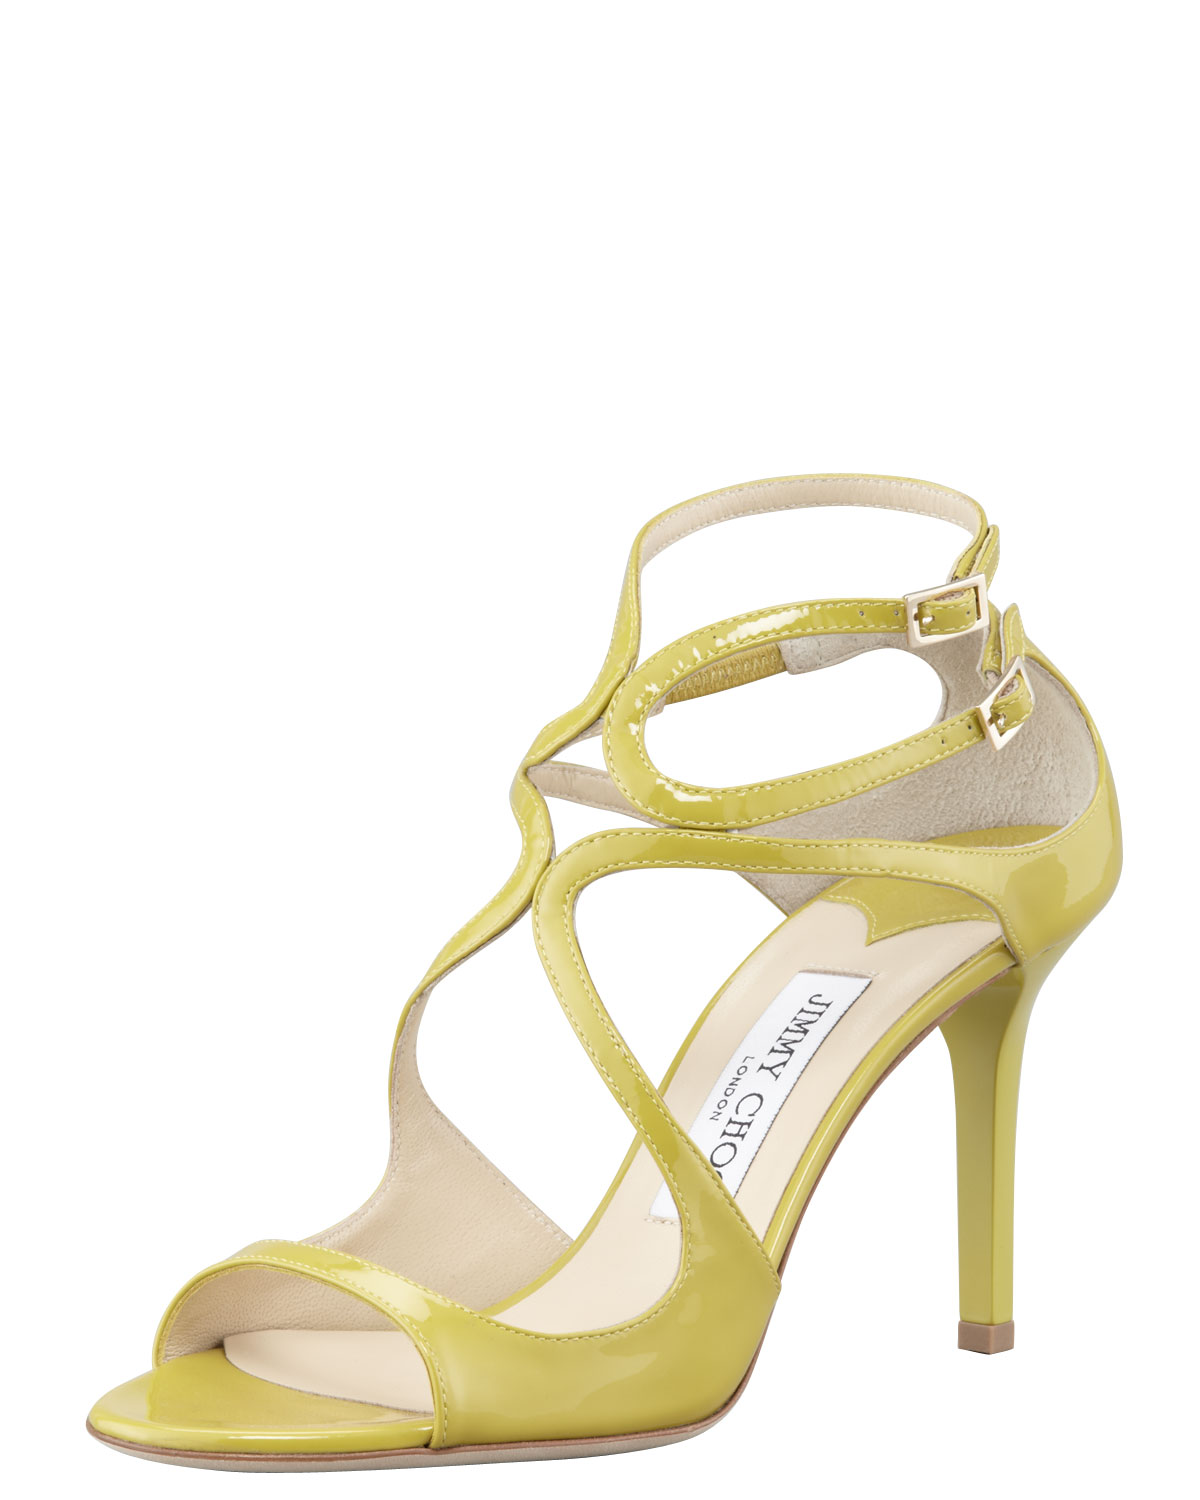 f8208107fe24 Lyst - Jimmy Choo Ivette Patent Strappy Sandal Citrine in Yellow